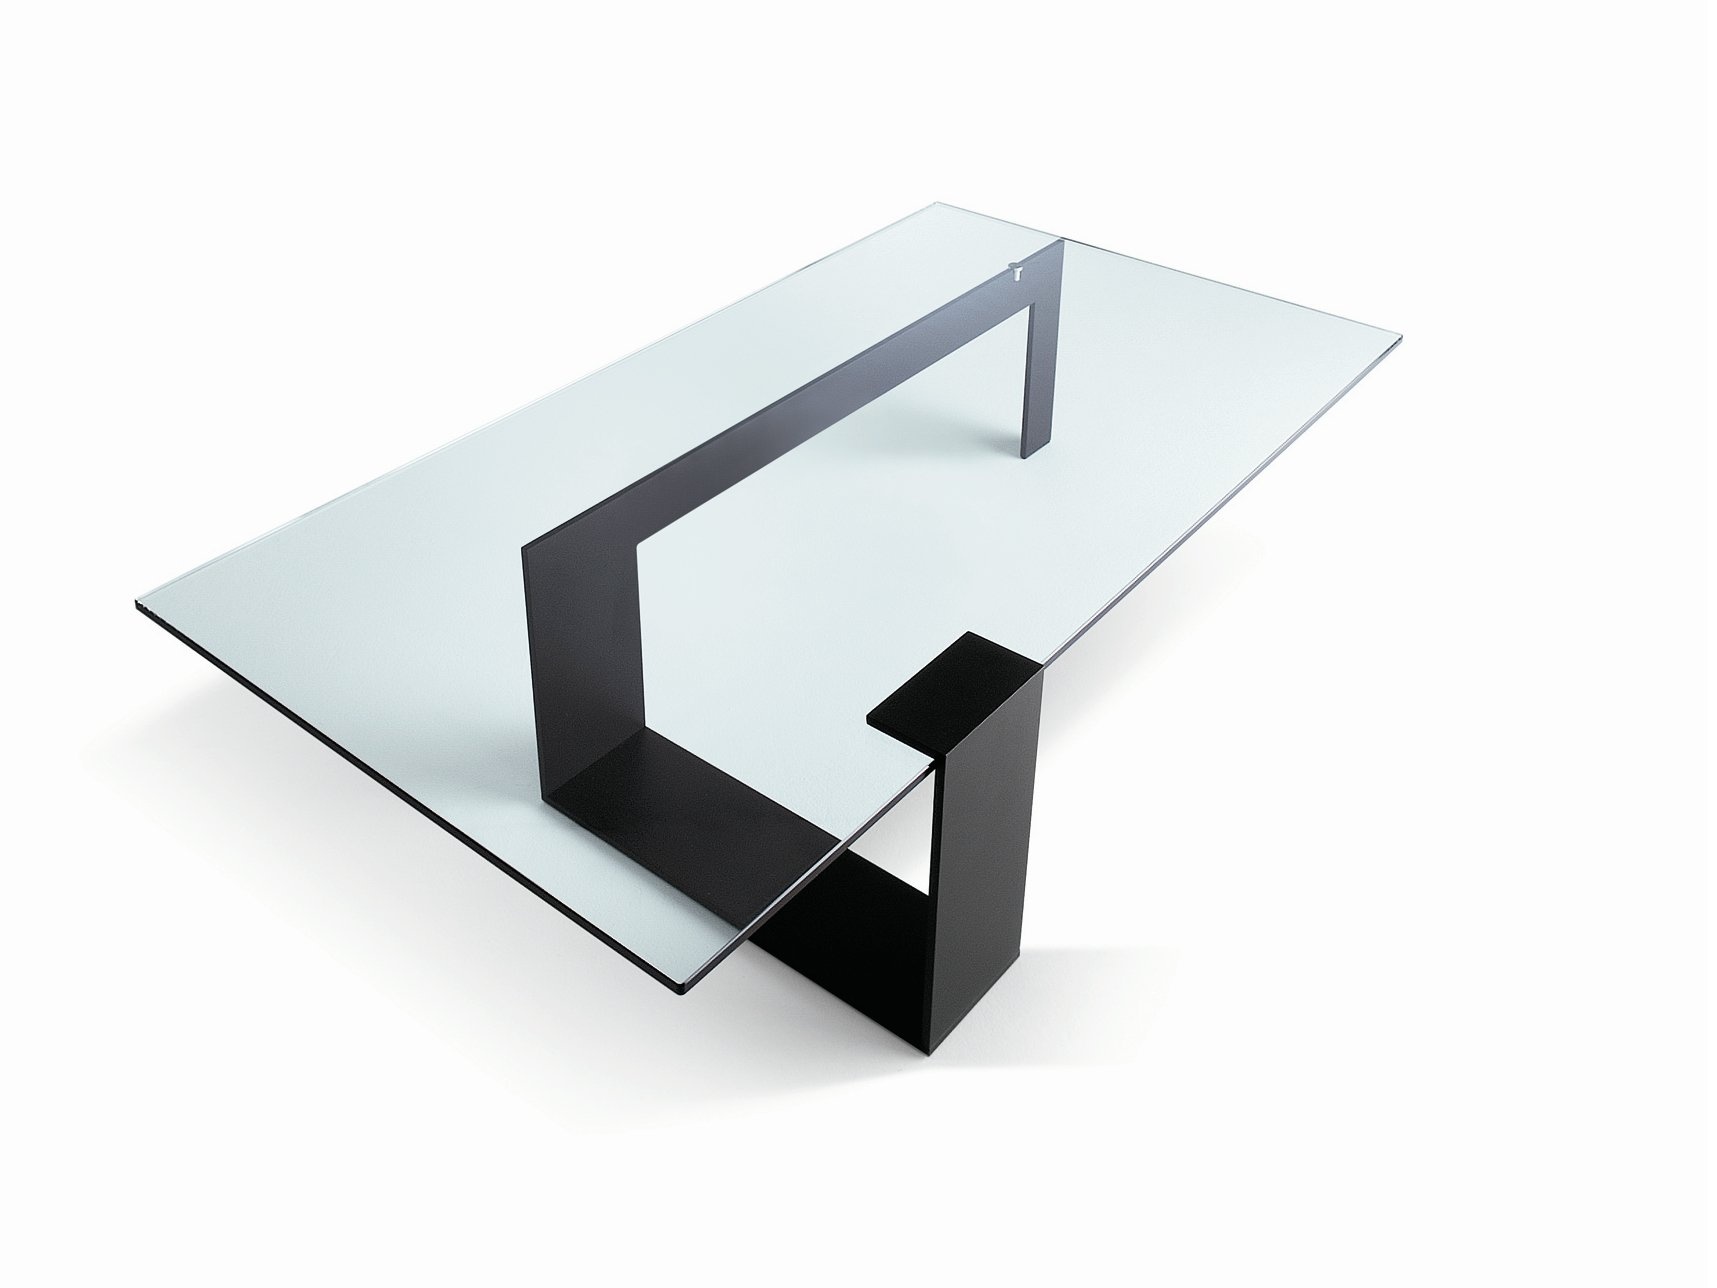 Table basse en verre plinsky by t d tonelli design design giulio mancini - Table basse design verre ...